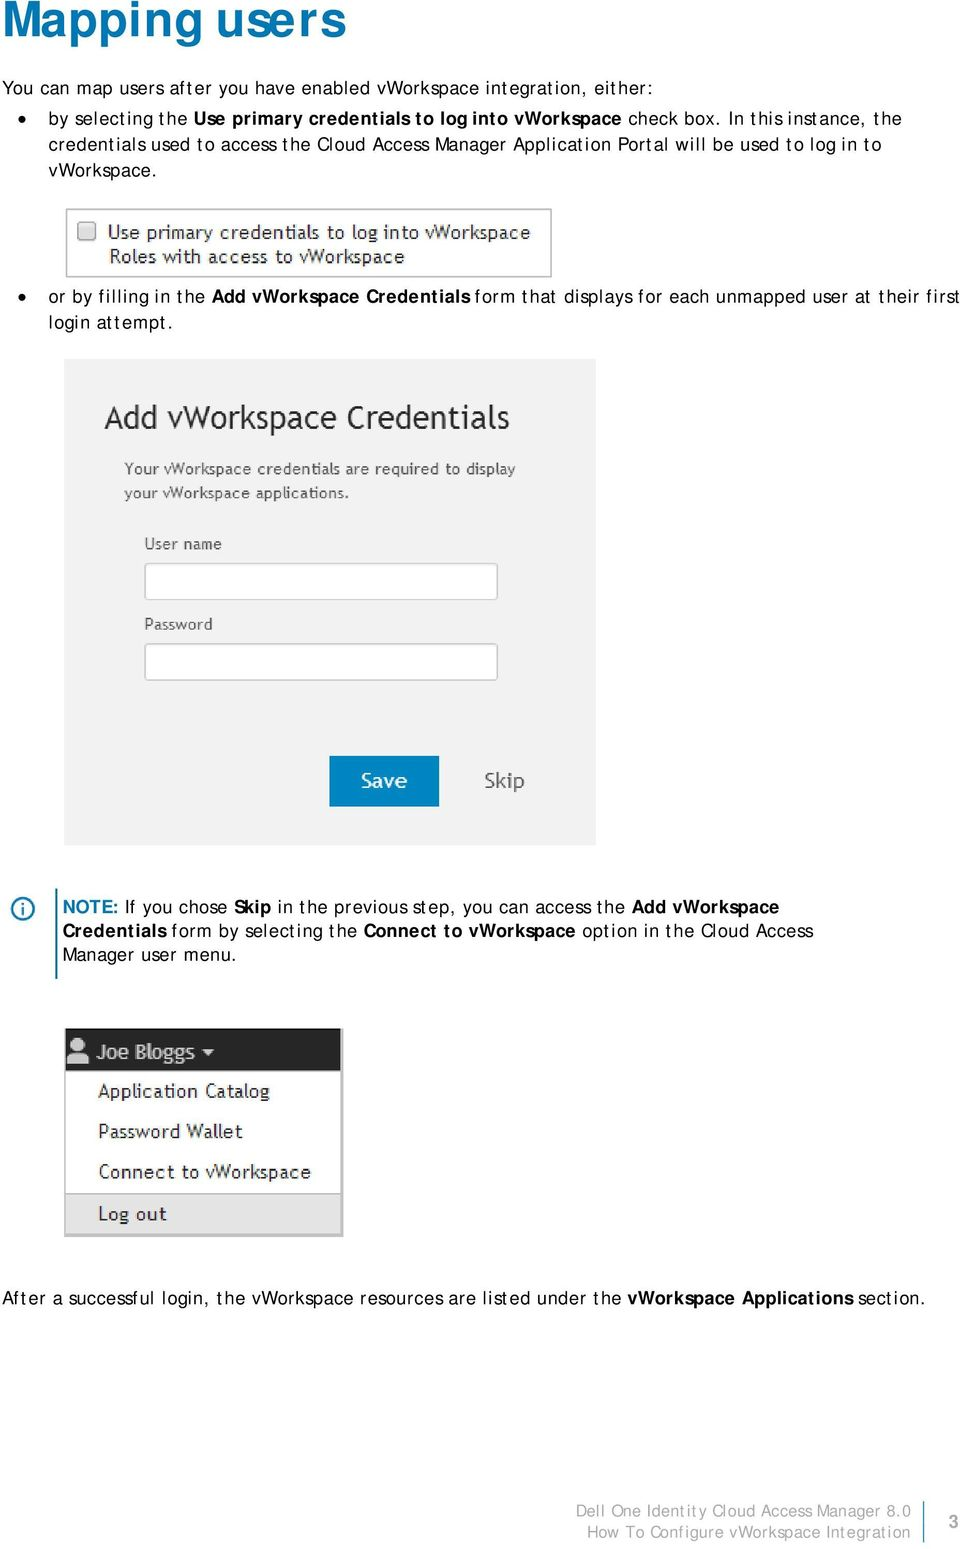 or by filling in the Add vworkspace Credentials form that displays for each unmapped user at their first login attempt.